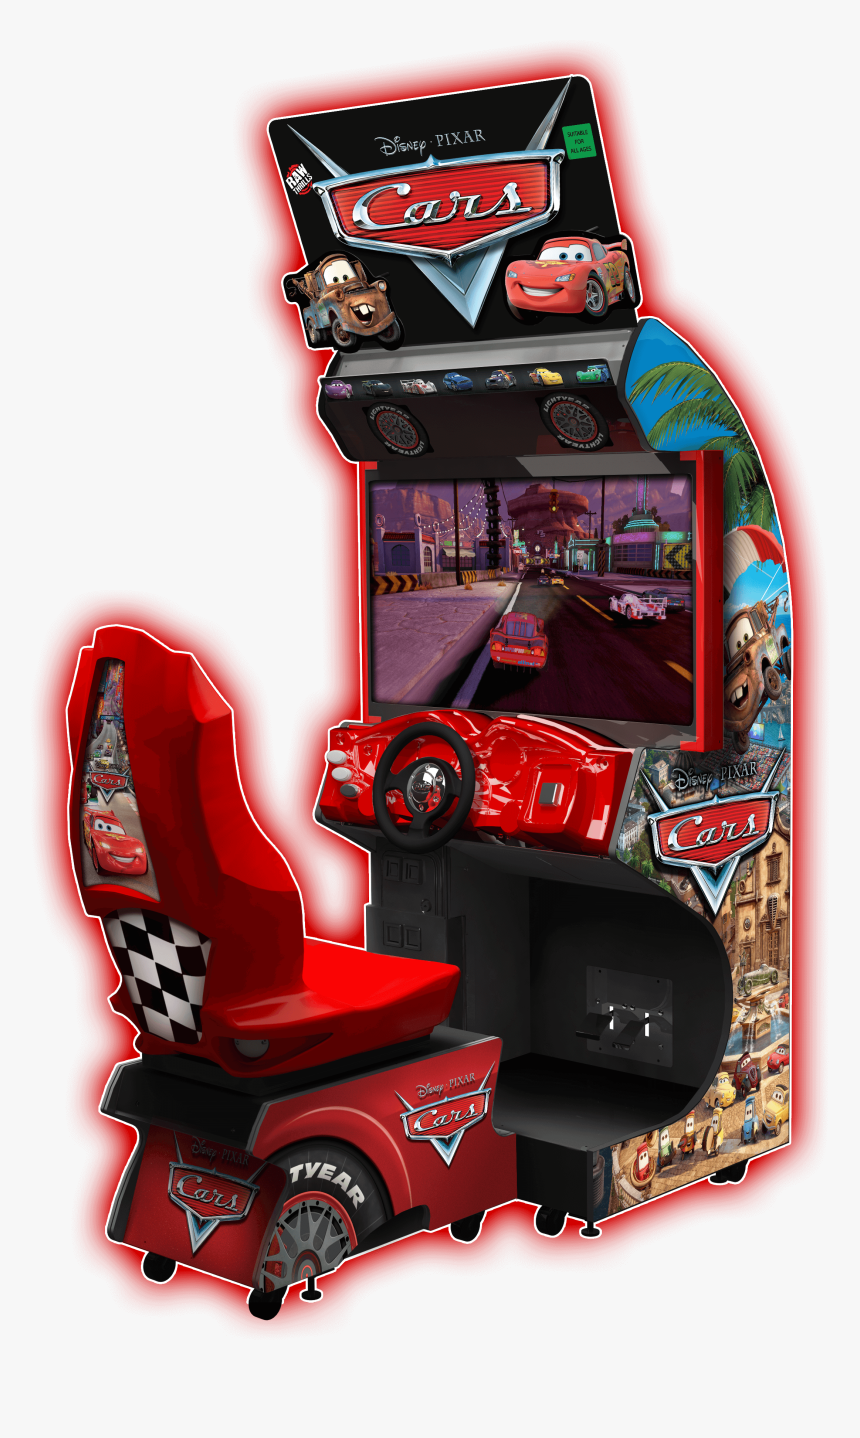 Cars 2 Arcade Raw Thrills, HD Png Download, Free Download